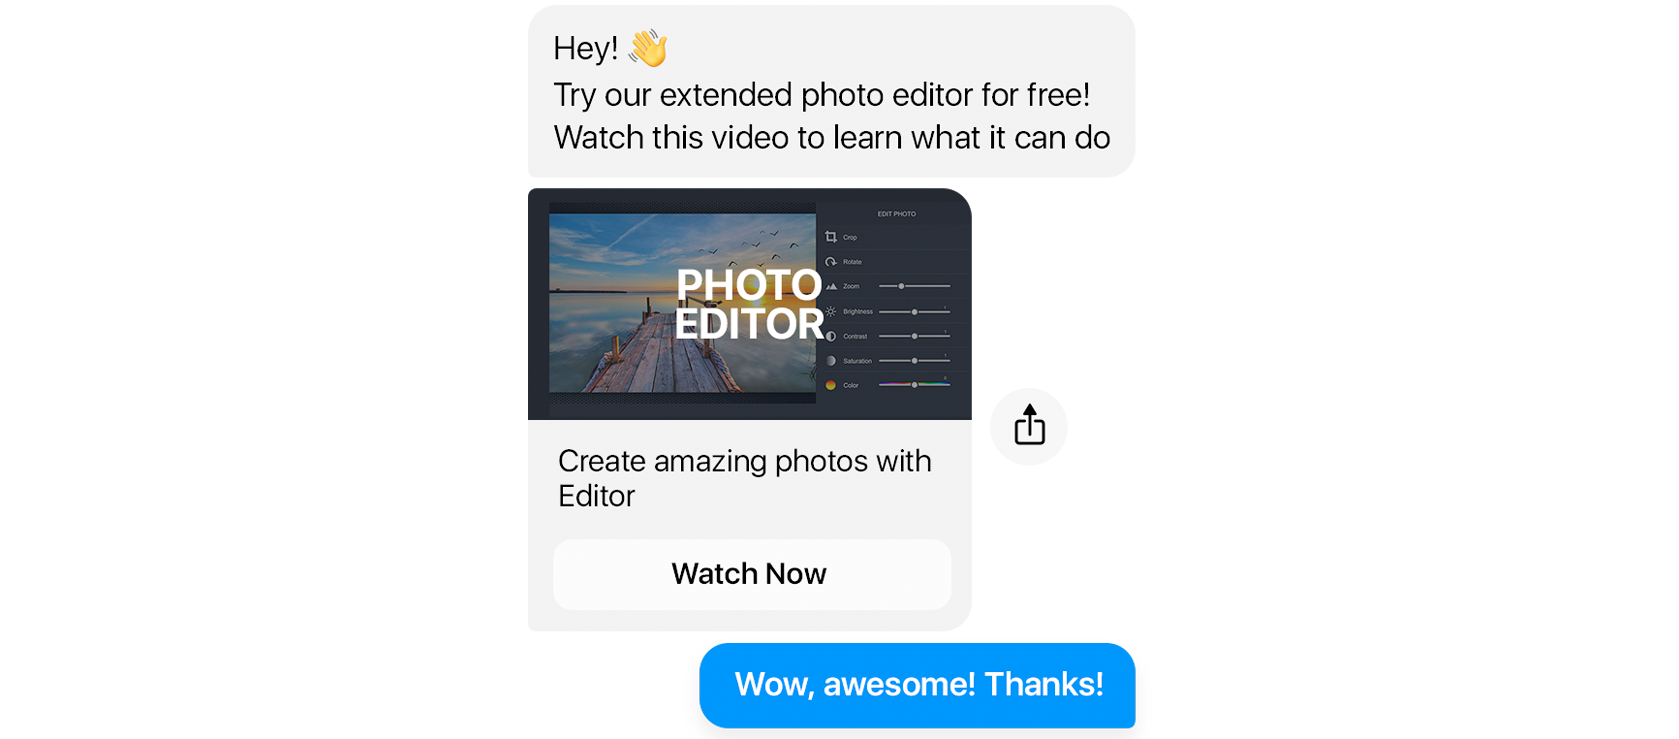 Customer onboarding with Facebook messages